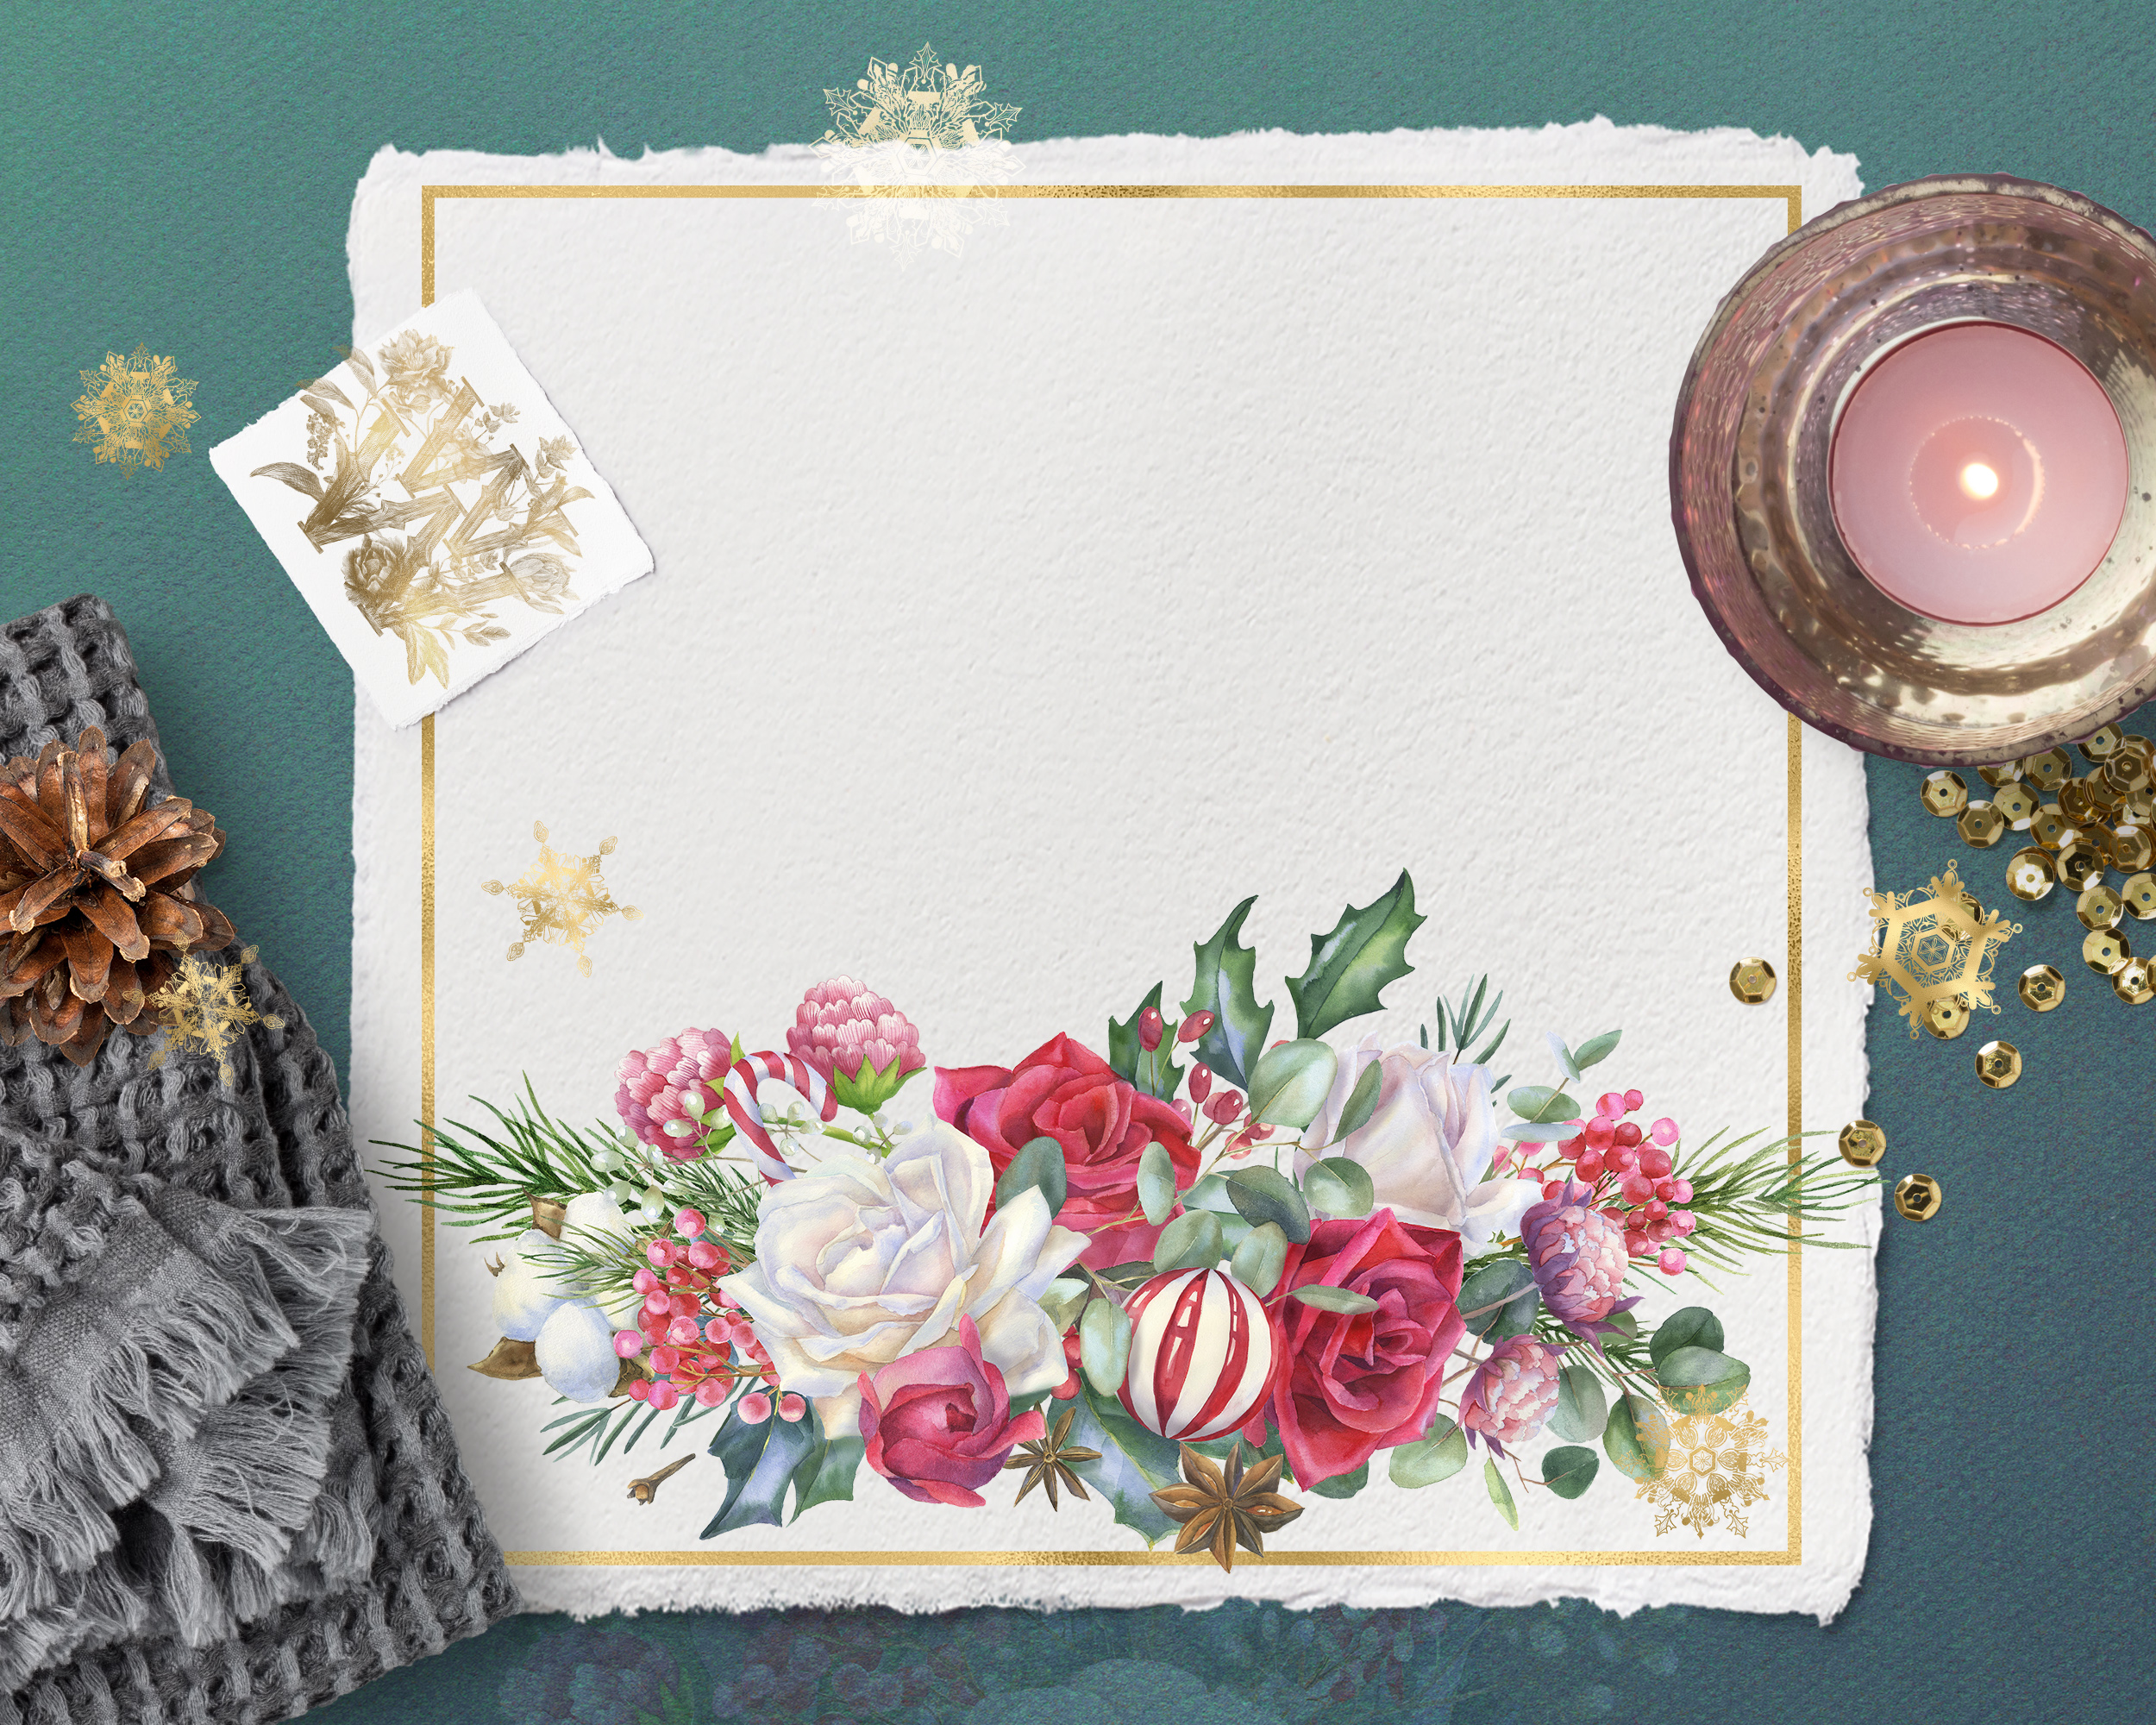 Christmas floral border clipart, Watercolor winter frame example image 7